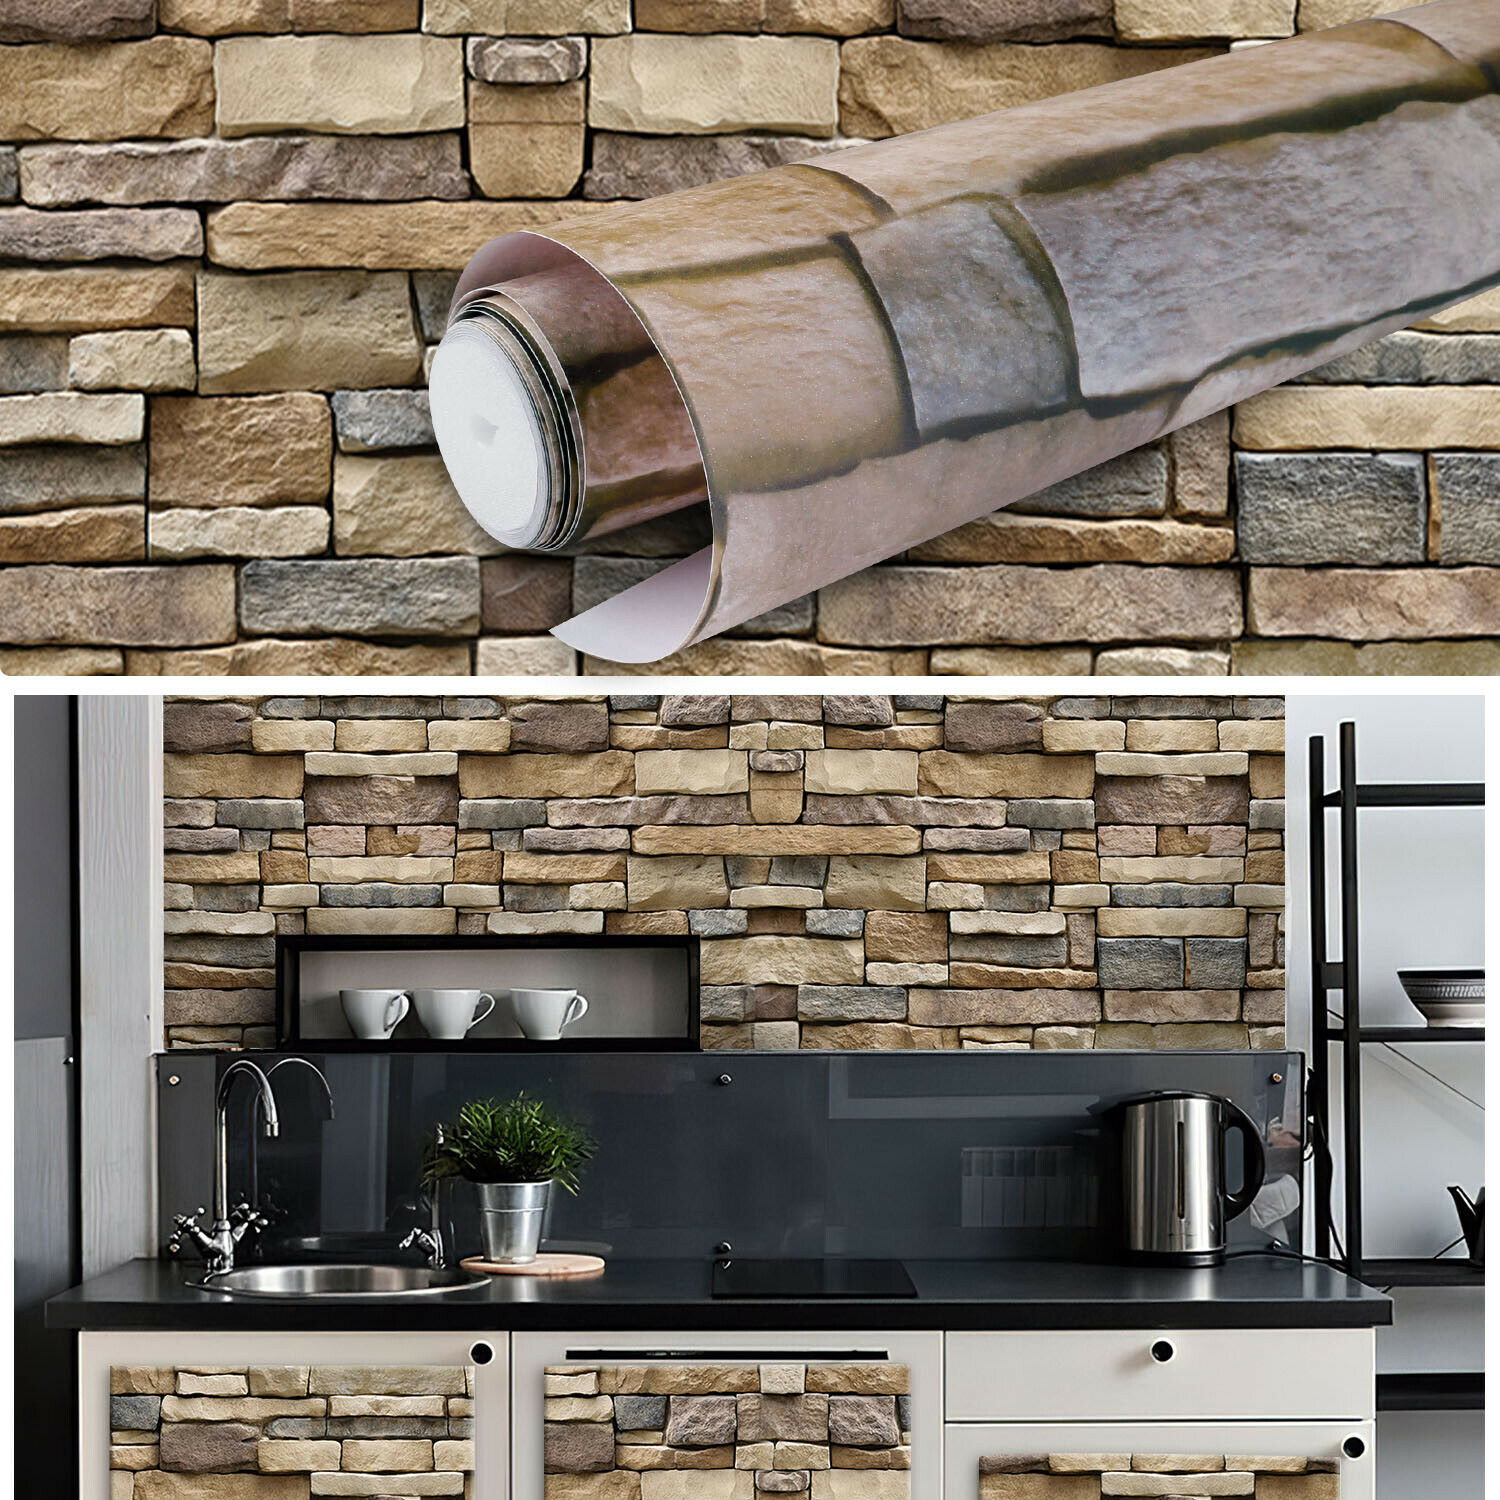 9.8ft*17in 3D Brick Stone Contact Paper Self Adhesive Wallpaper Roll Peel Stick Building & Hardware